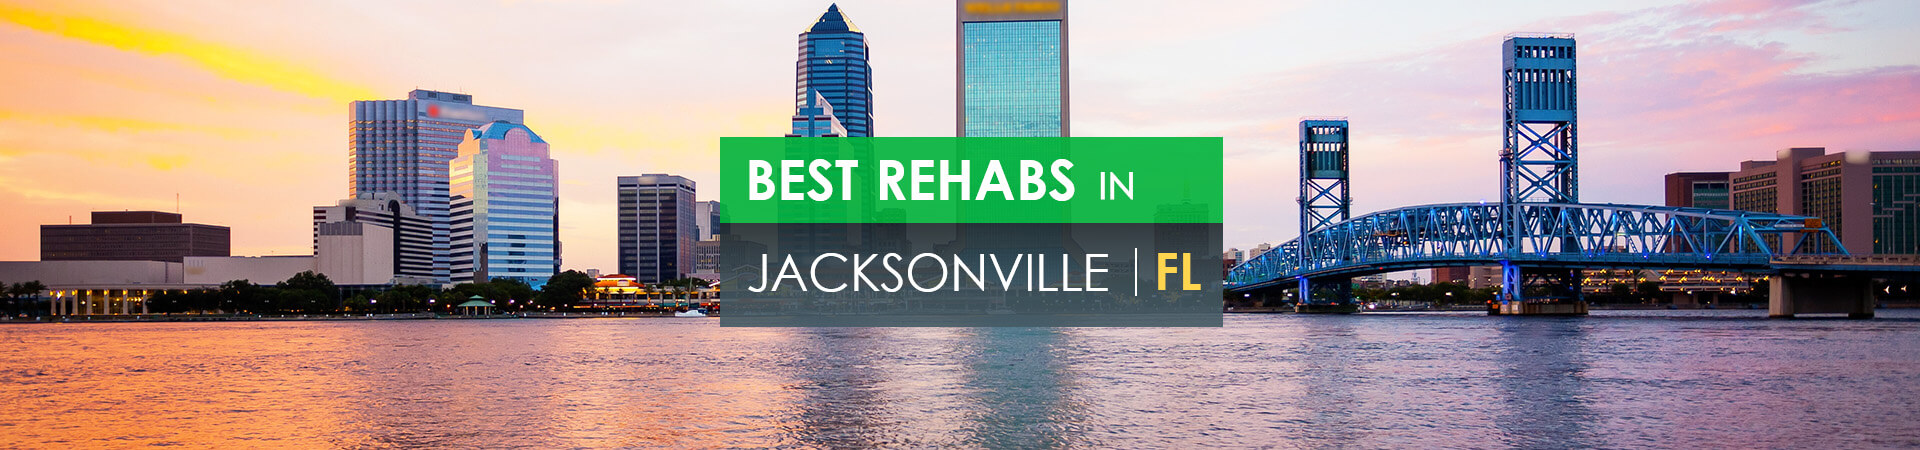 Best rehabs in Jacksonville, FL